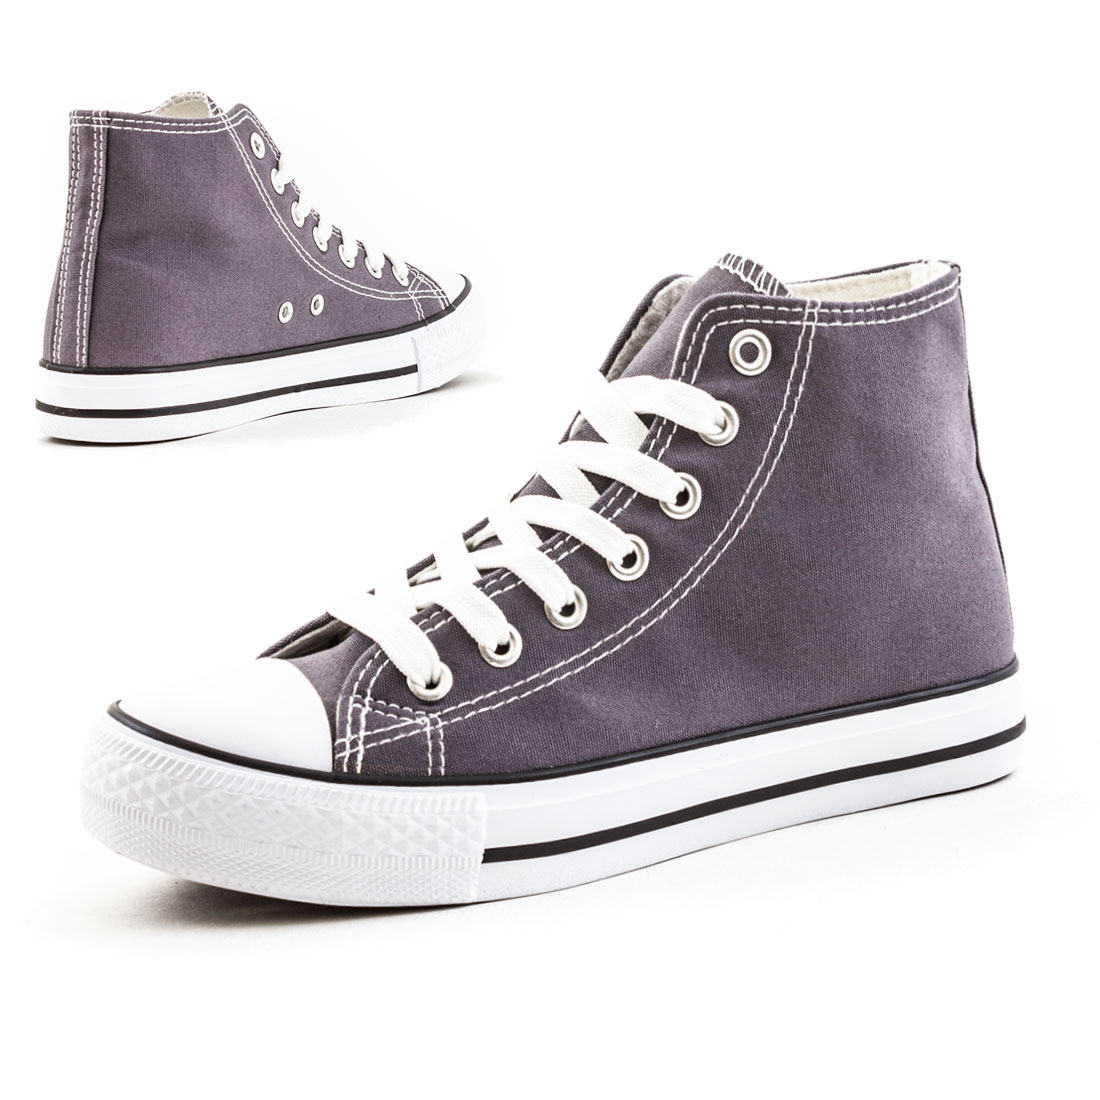 Neu Damen Nieten High Top Sneaker Canvas Turnschuhe Schuhe 36 37 38 39 40 41 8zJ7AZ